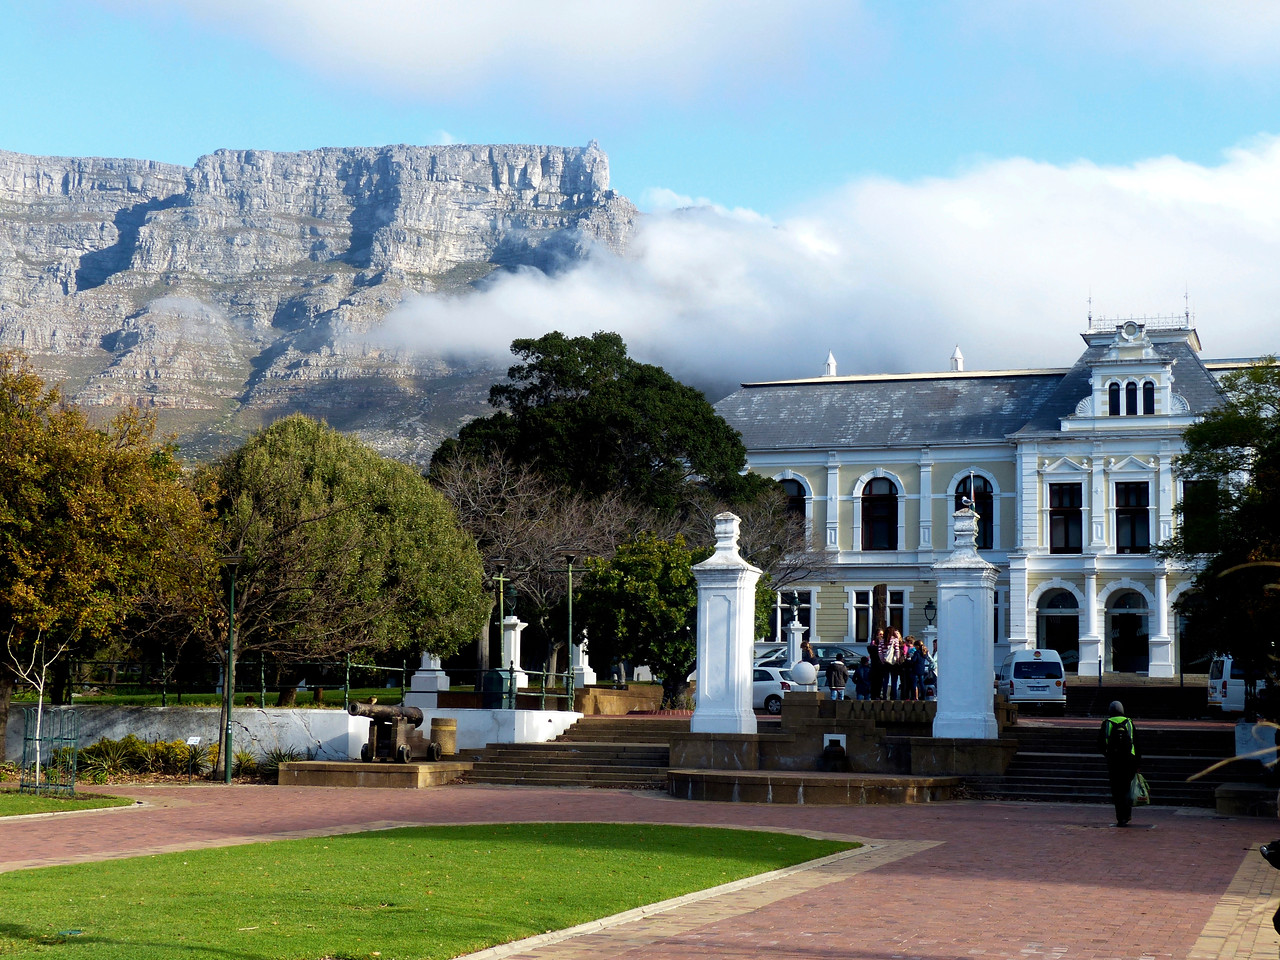 This is the  South African National Gallery.